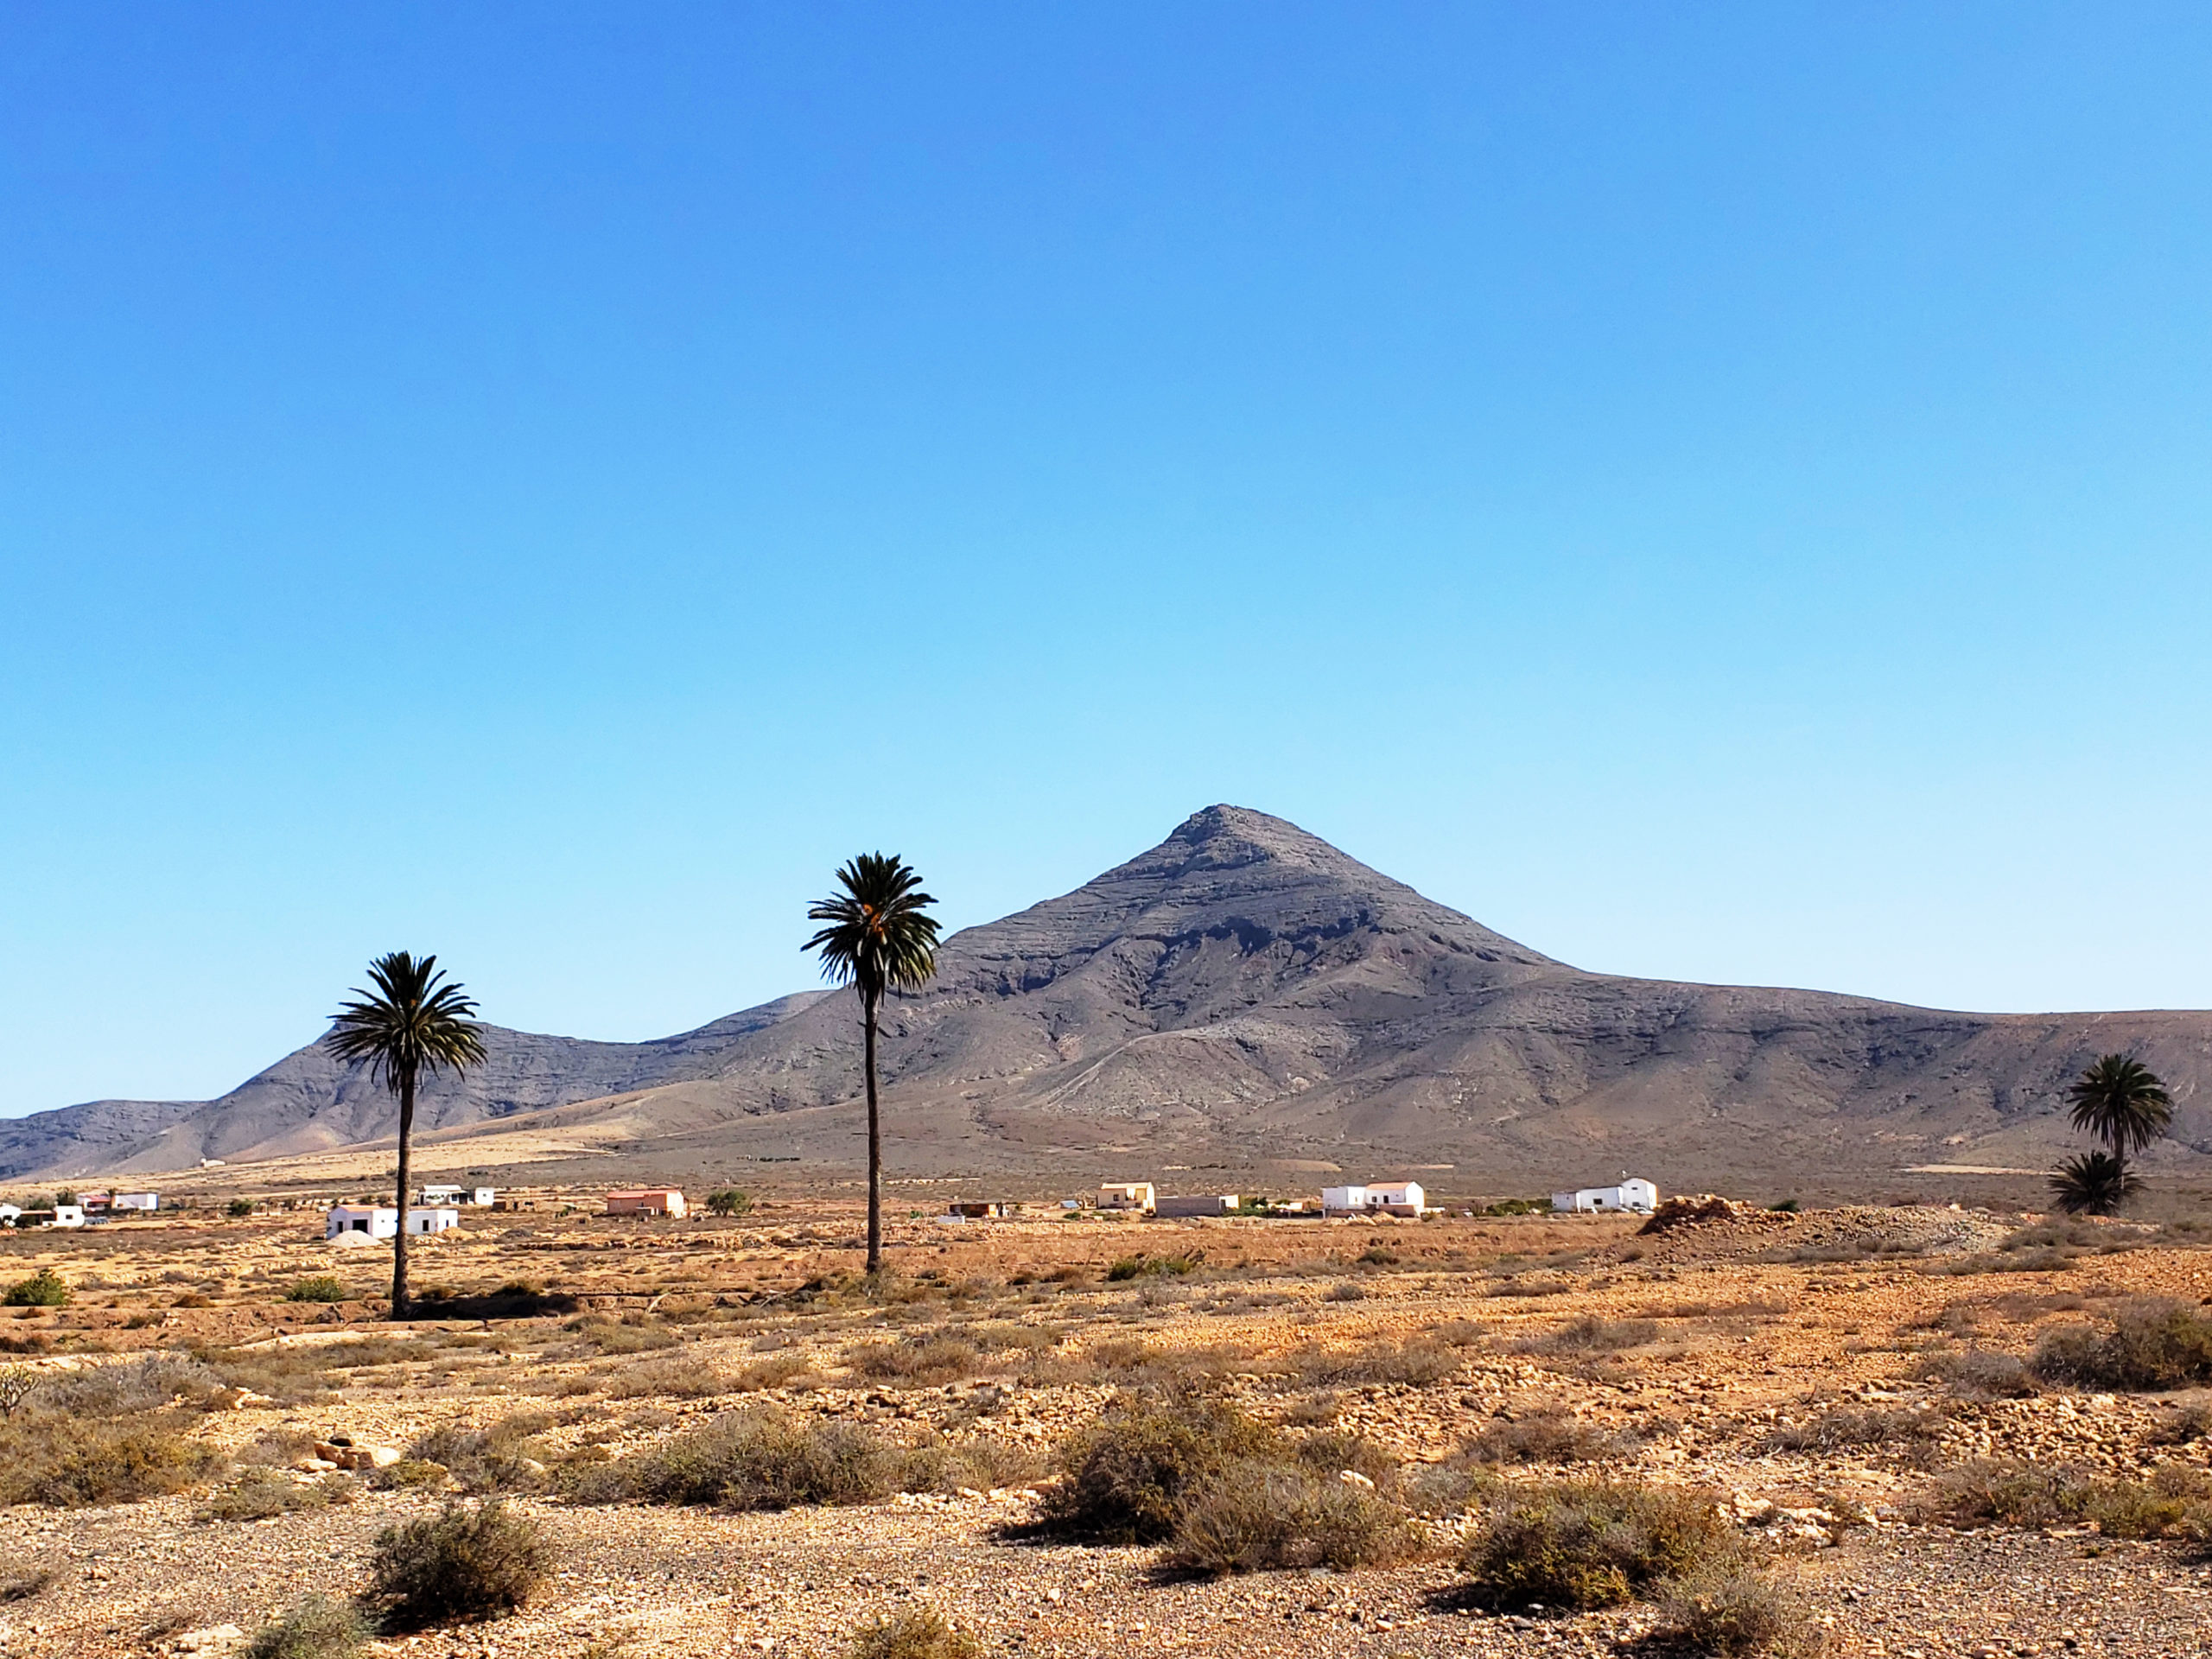 25_Photos_To_Inspire_You_To_Visit_The_Canary_Islands